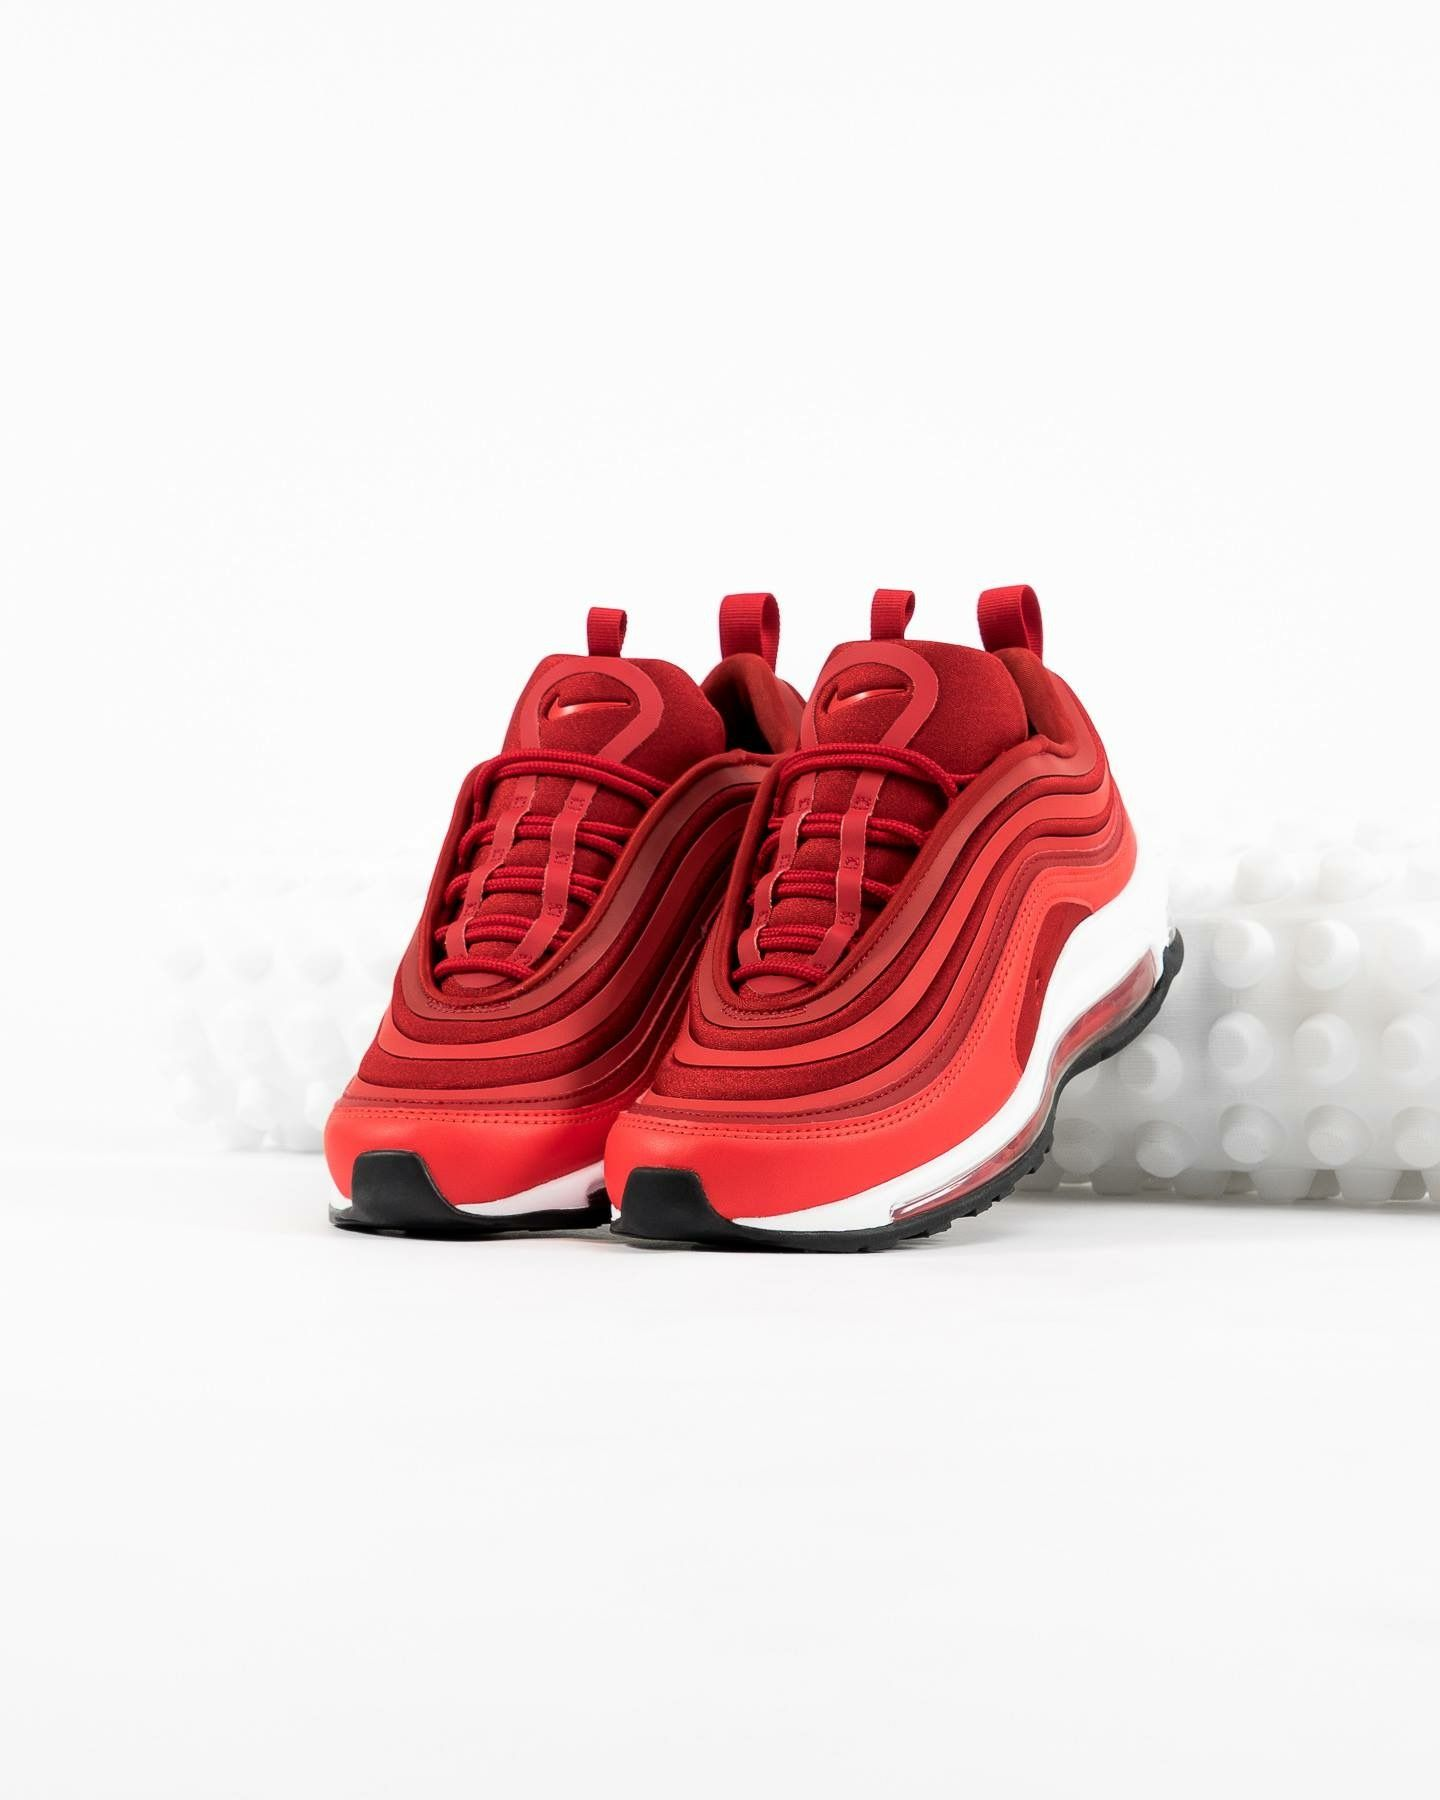 455e9b0fd3 Nike Air Max 97 Ultra: Red | Nike shoes in 2019 | Sneakers nike ...